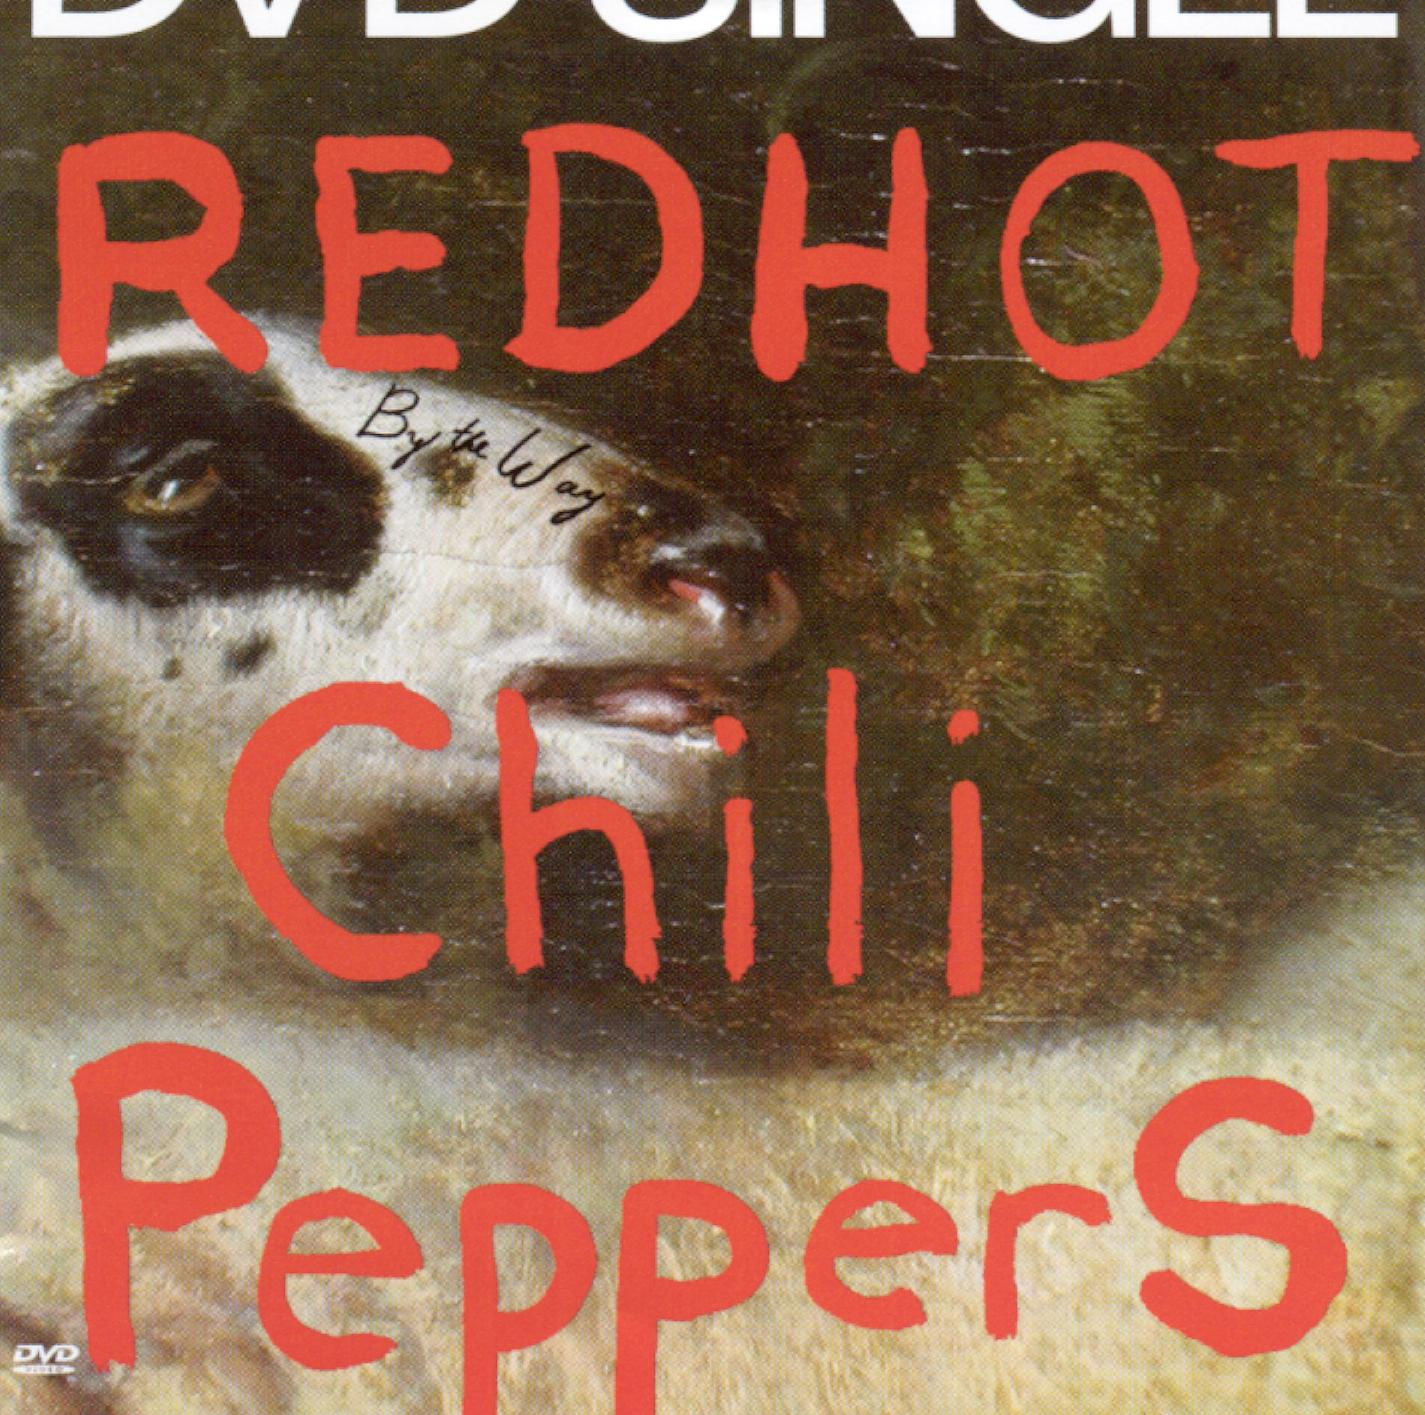 Red Hot Chili Peppers: By the Way [DVD Single]